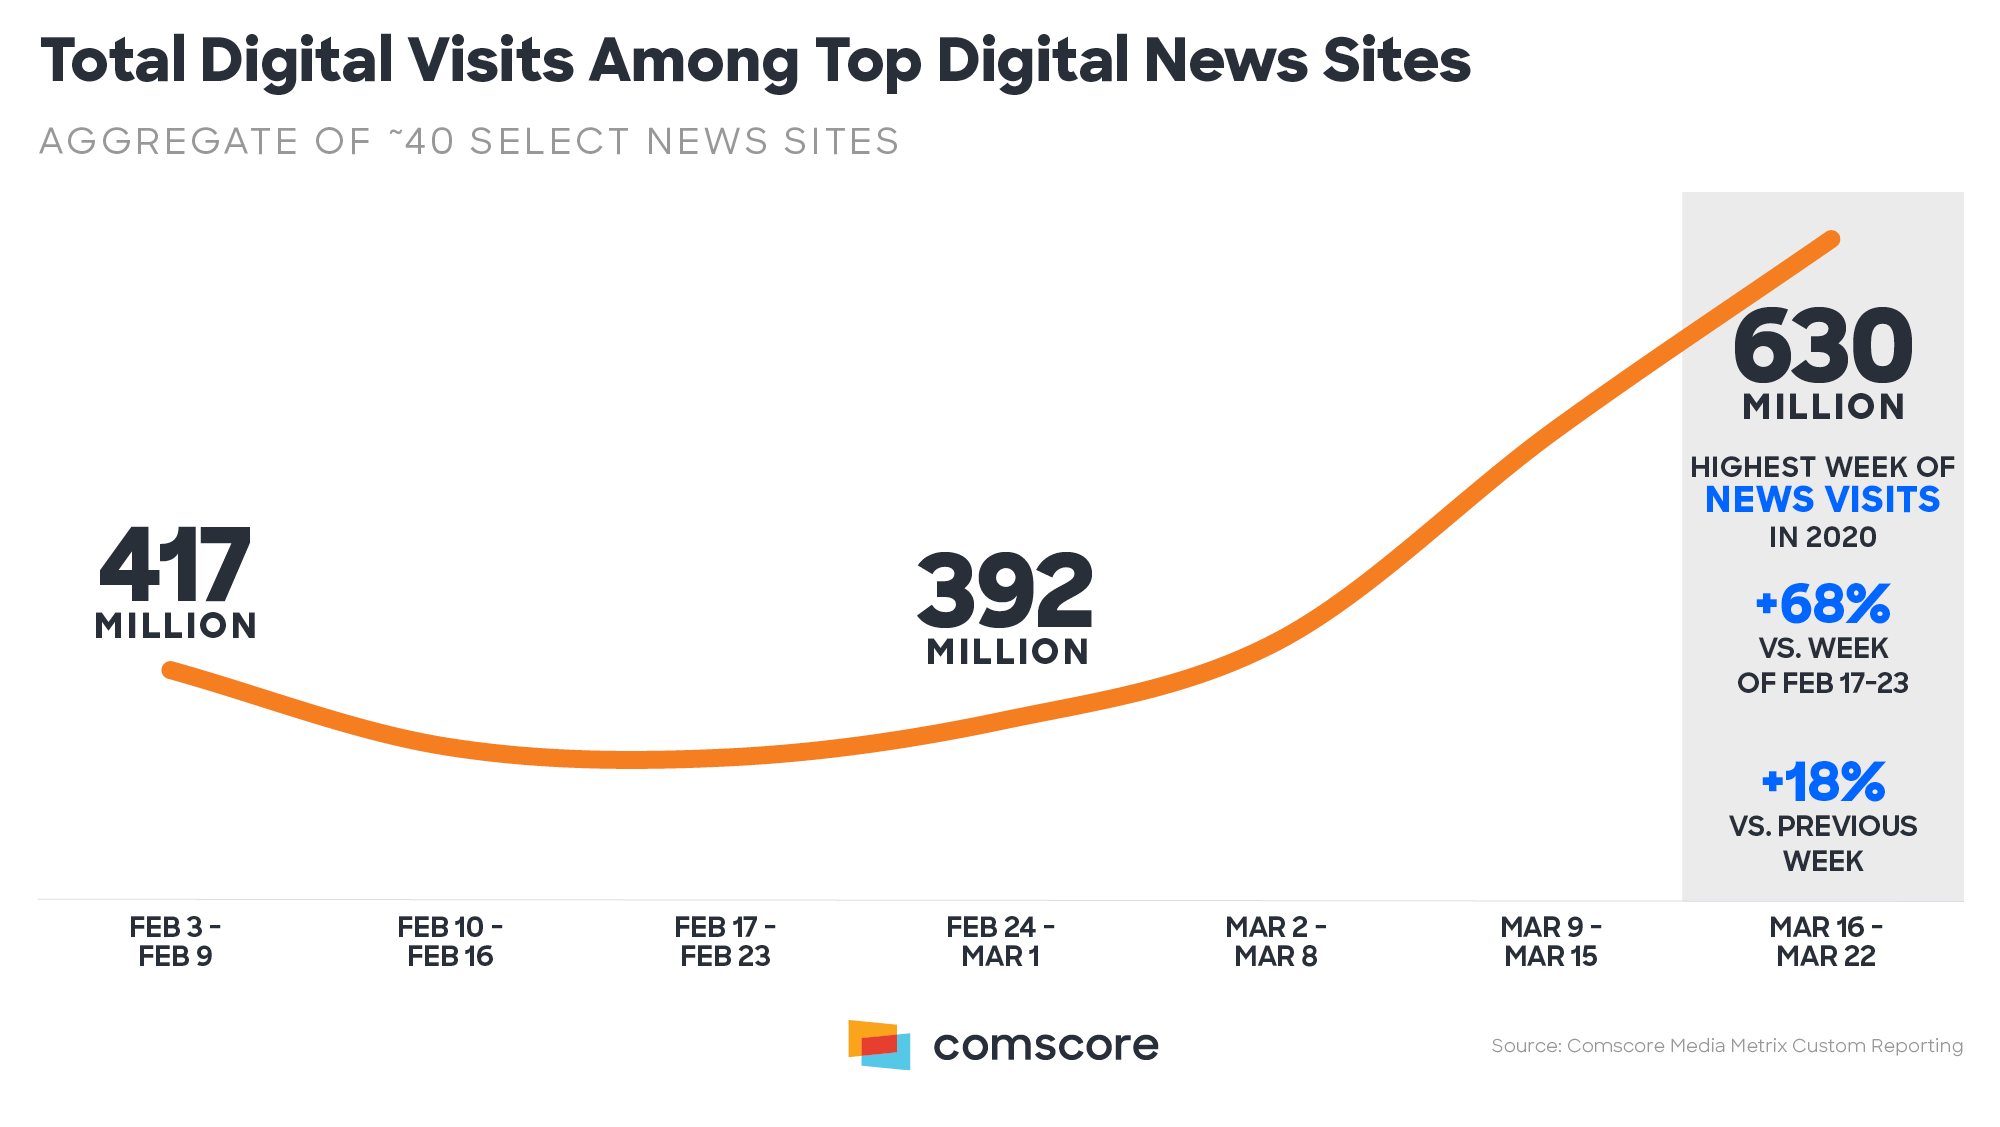 Total Digital Visits Among Top Digital News Sites